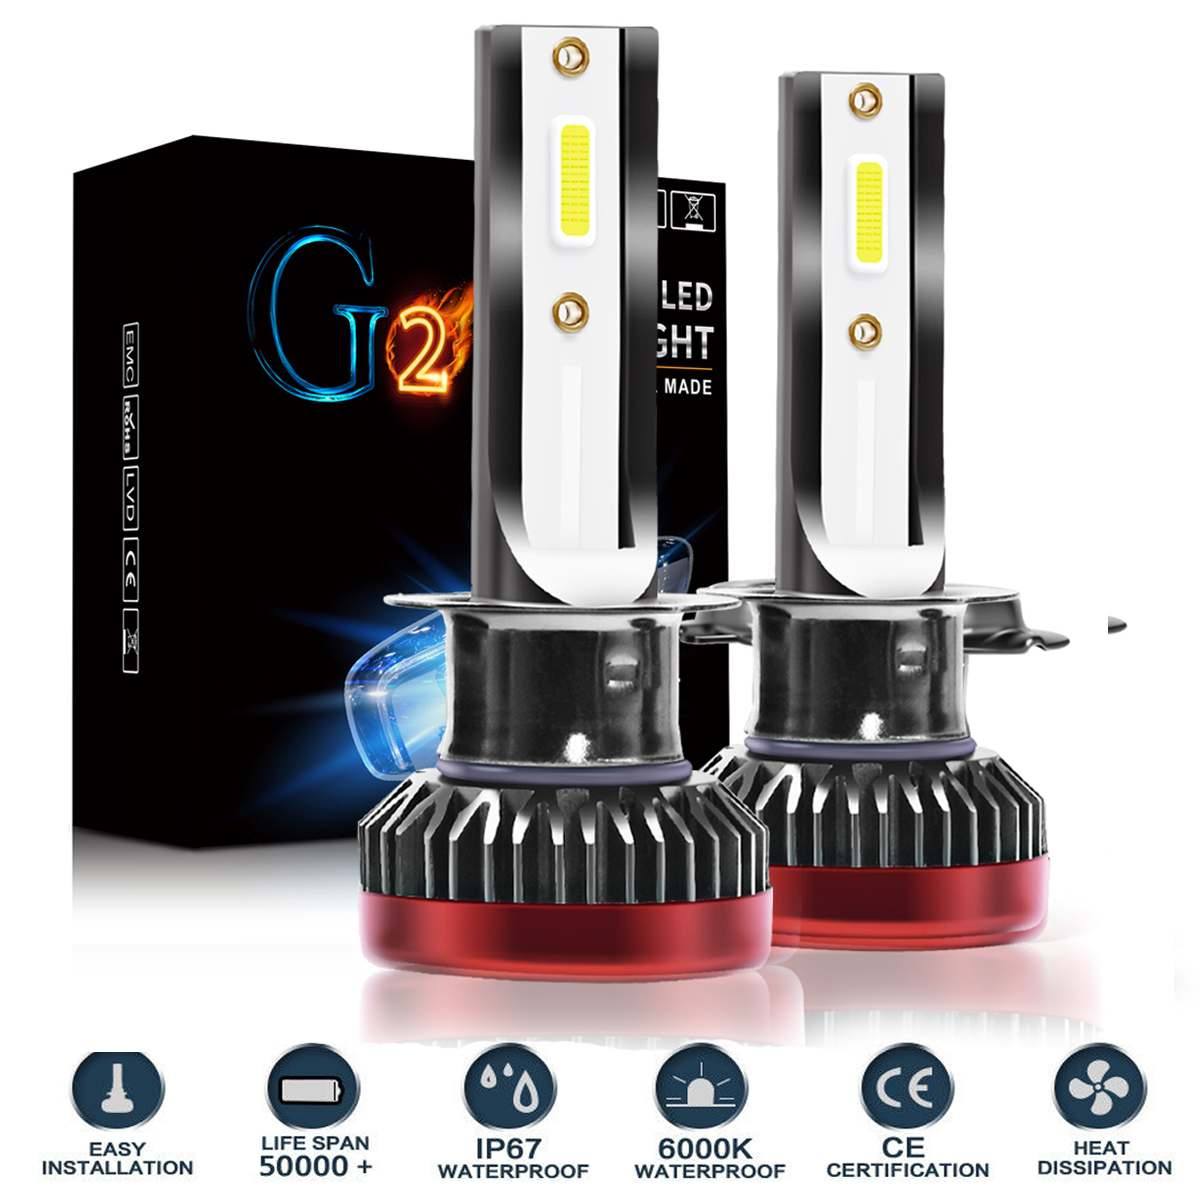 G2 Car MINI LED Headlight Bulbs Kit 160W 30000LM 6000K High/Low Beam Headlight Bulb H1 H3 H7 H8/9/11 9005/HB3/H10 9006/HB4 9012G2 Car MINI LED Headlight Bulbs Kit 160W 30000LM 6000K High/Low Beam Headlight Bulb H1 H3 H7 H8/9/11 9005/HB3/H10 9006/HB4 9012